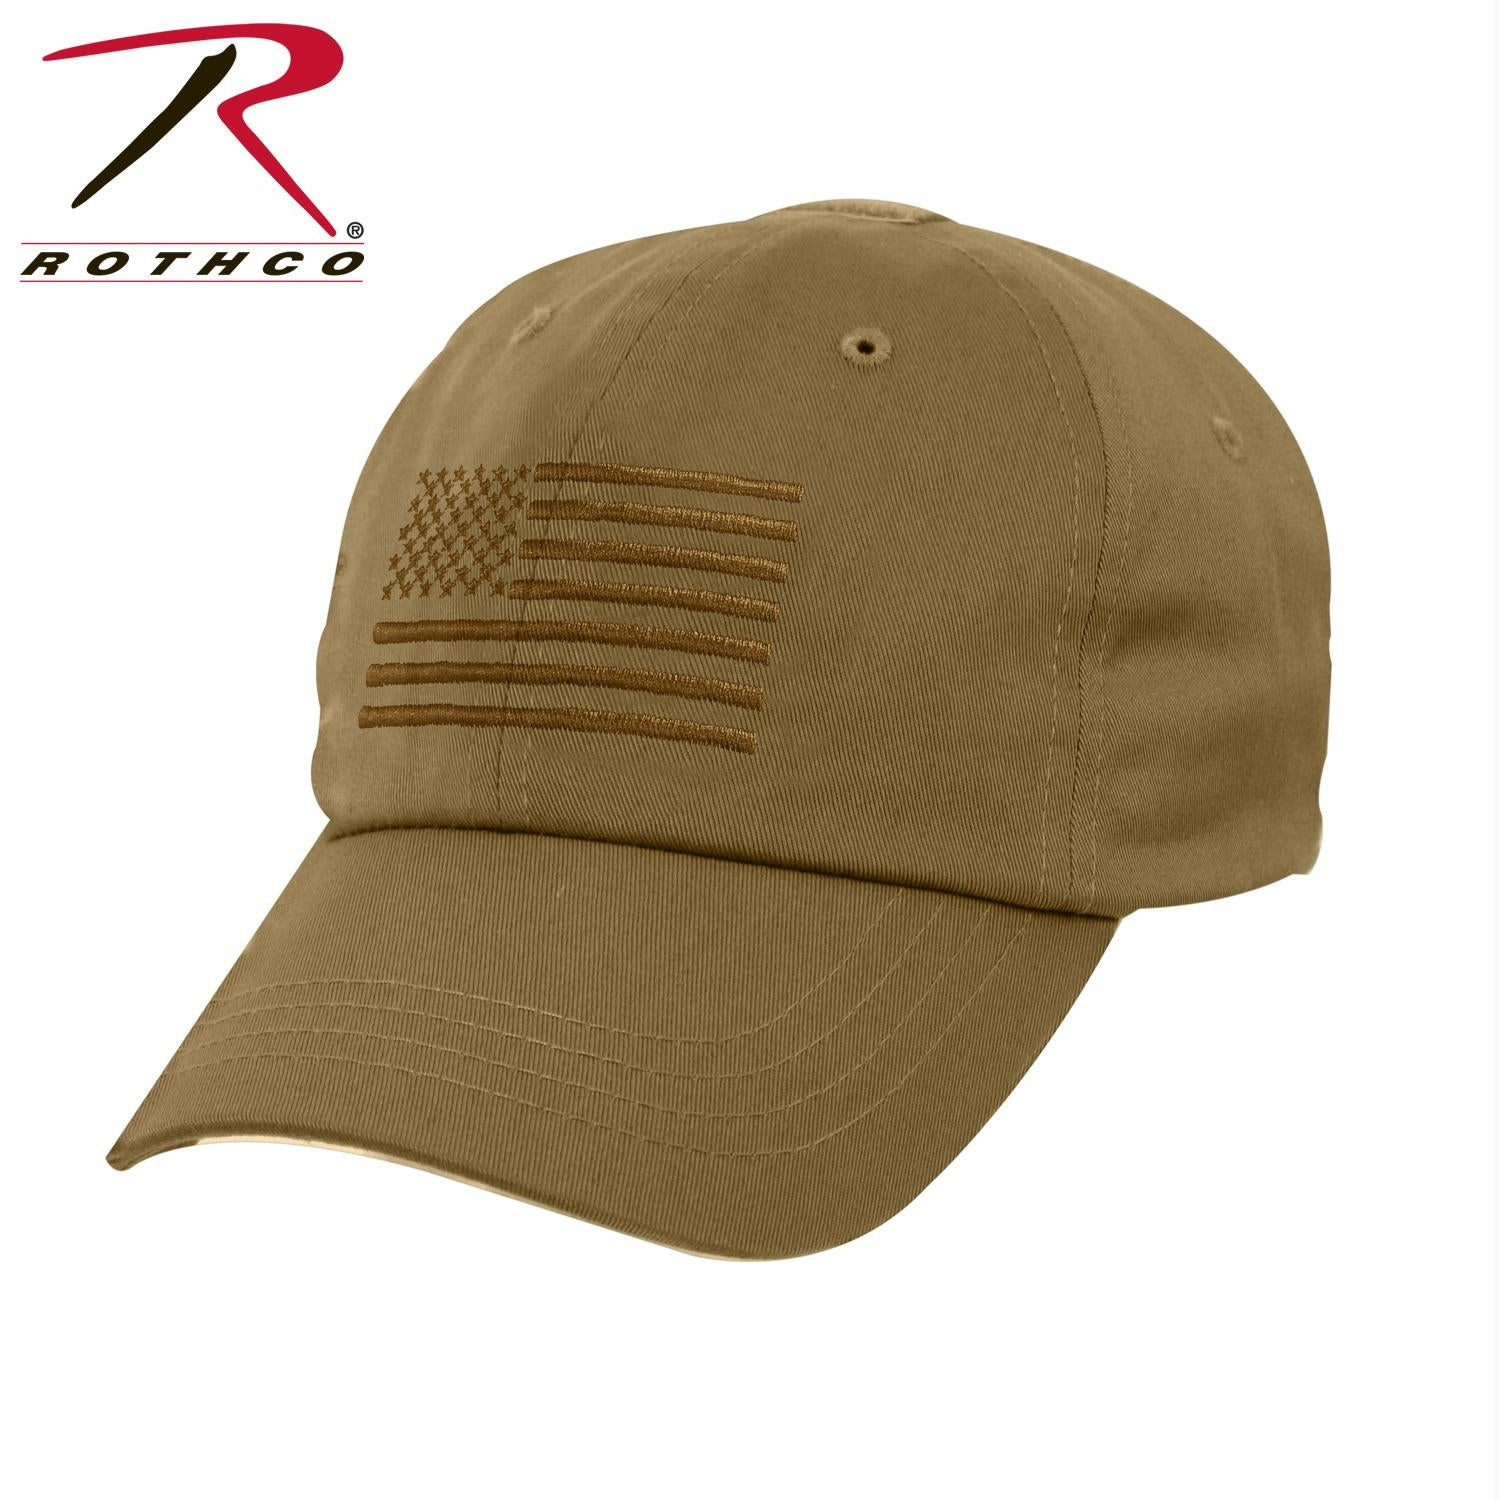 Rothco Tactical Operator Cap With US Flag - Coyote Brown / One Size